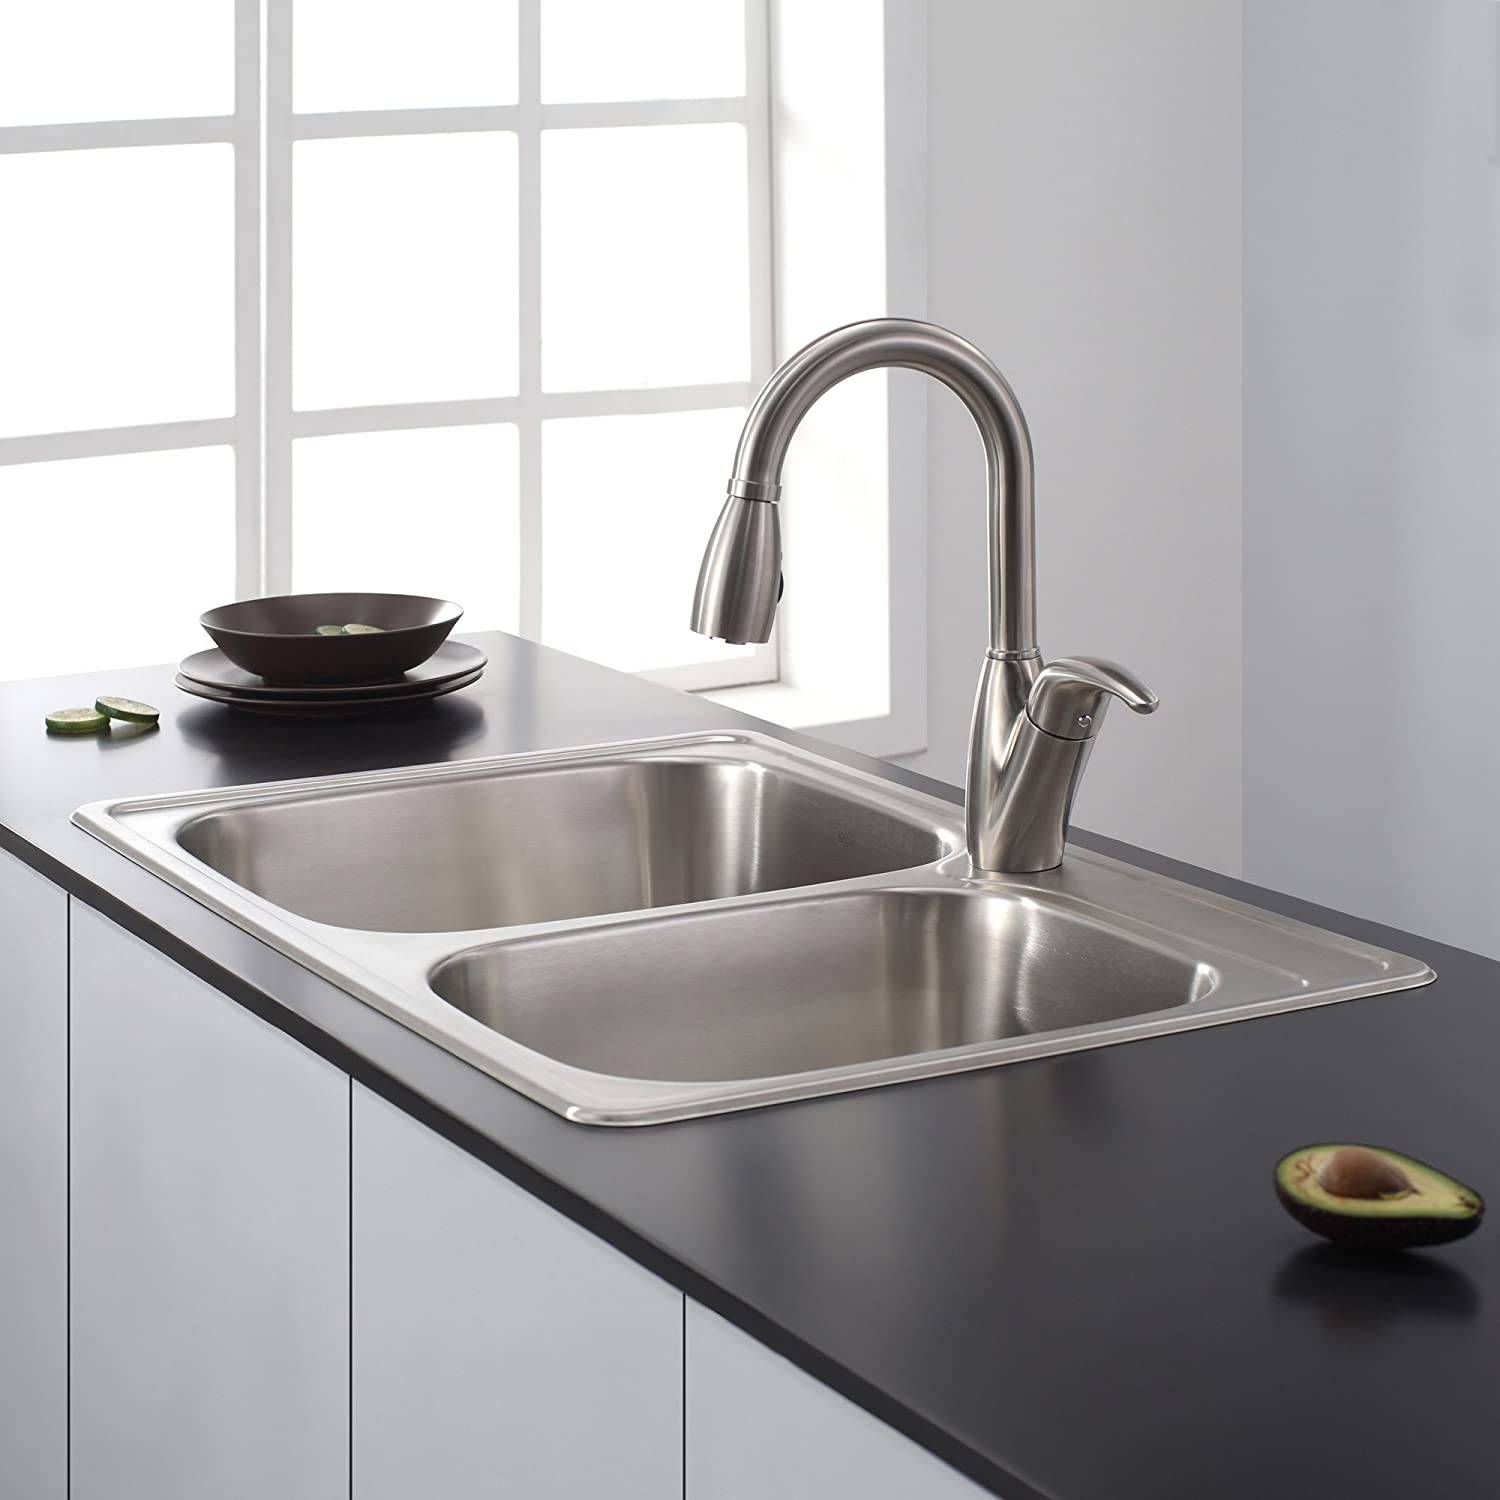 kitchen tei sinks yonkou big steel stainless pin net